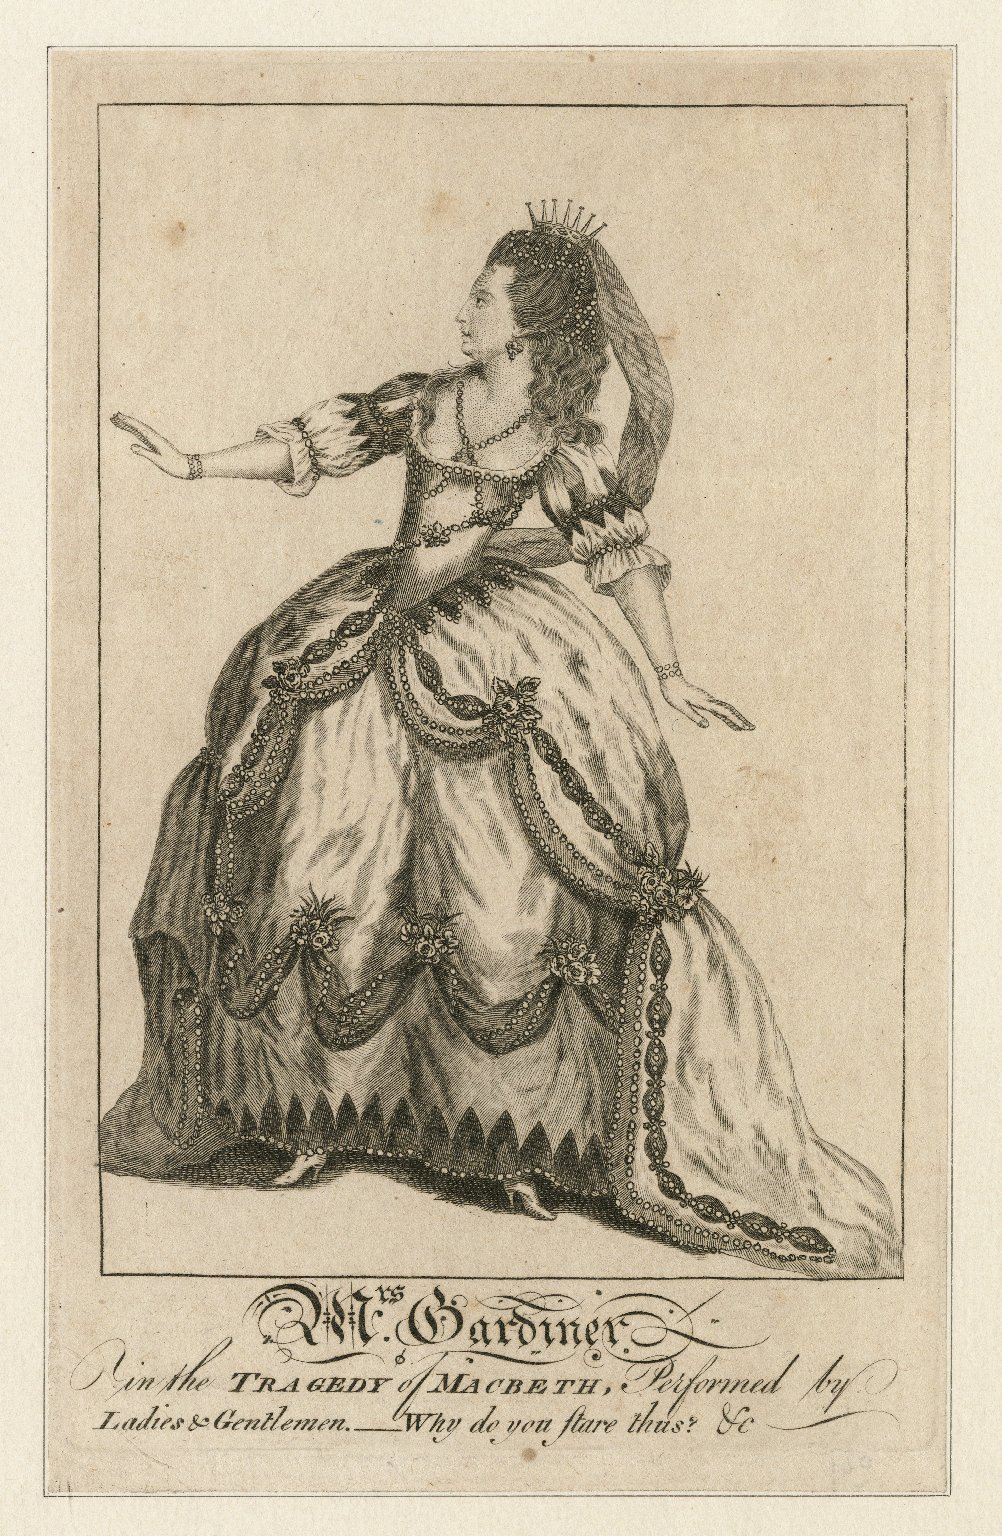 Mrs. Gardiner in the tragedy of Macbeth, performed by ladies & gentlemen: Why do you stare thus? &c. [graphic].